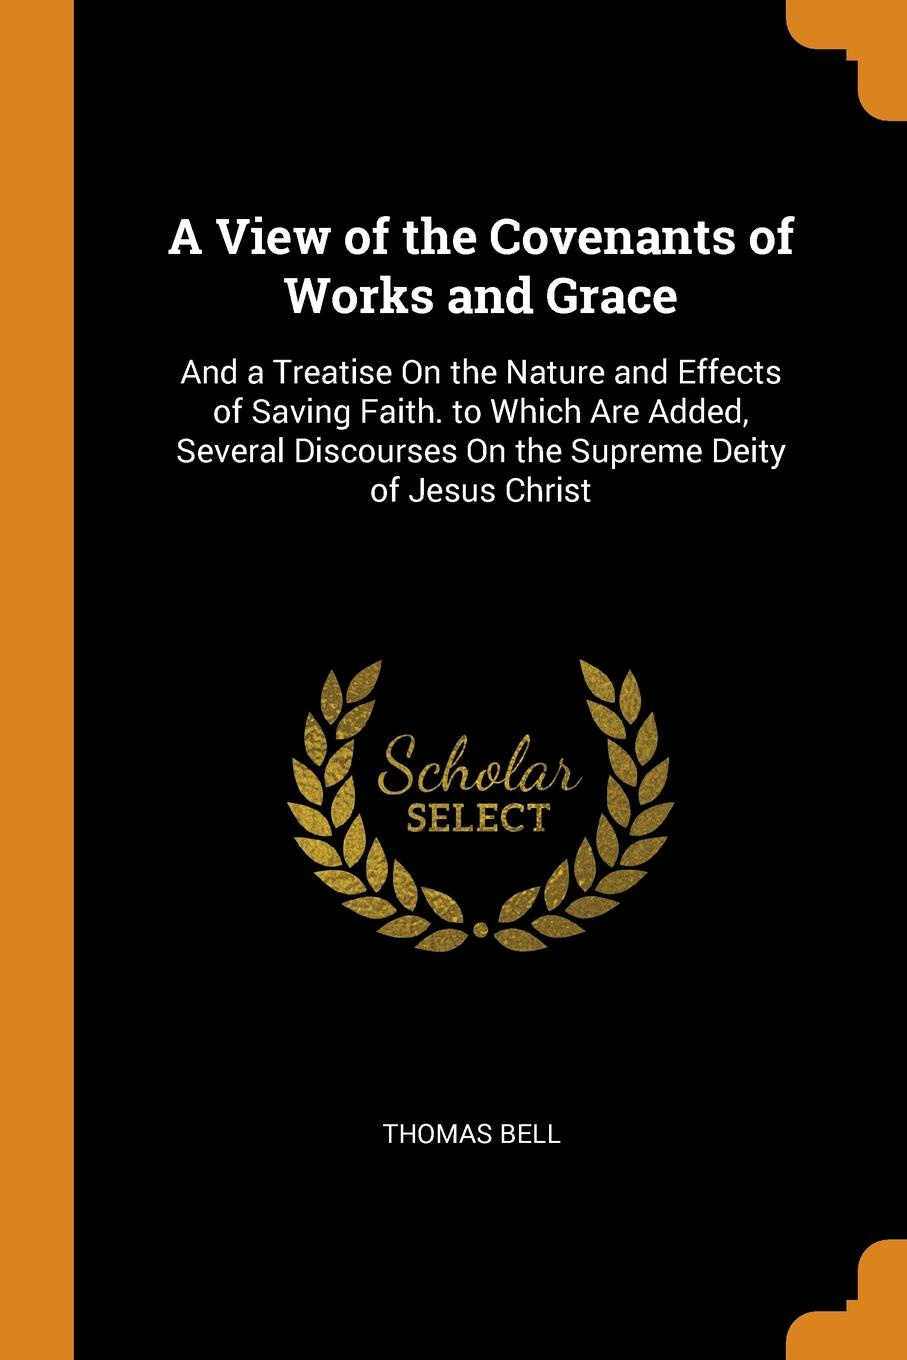 A-View-of-the-Covenants-of-Works-and-Grace-And-a-Treatise-On-the-Nature-and-Effects-of-Saving-Faith-to-Which-Are-Added-Several-Discourses-On-the-Supre